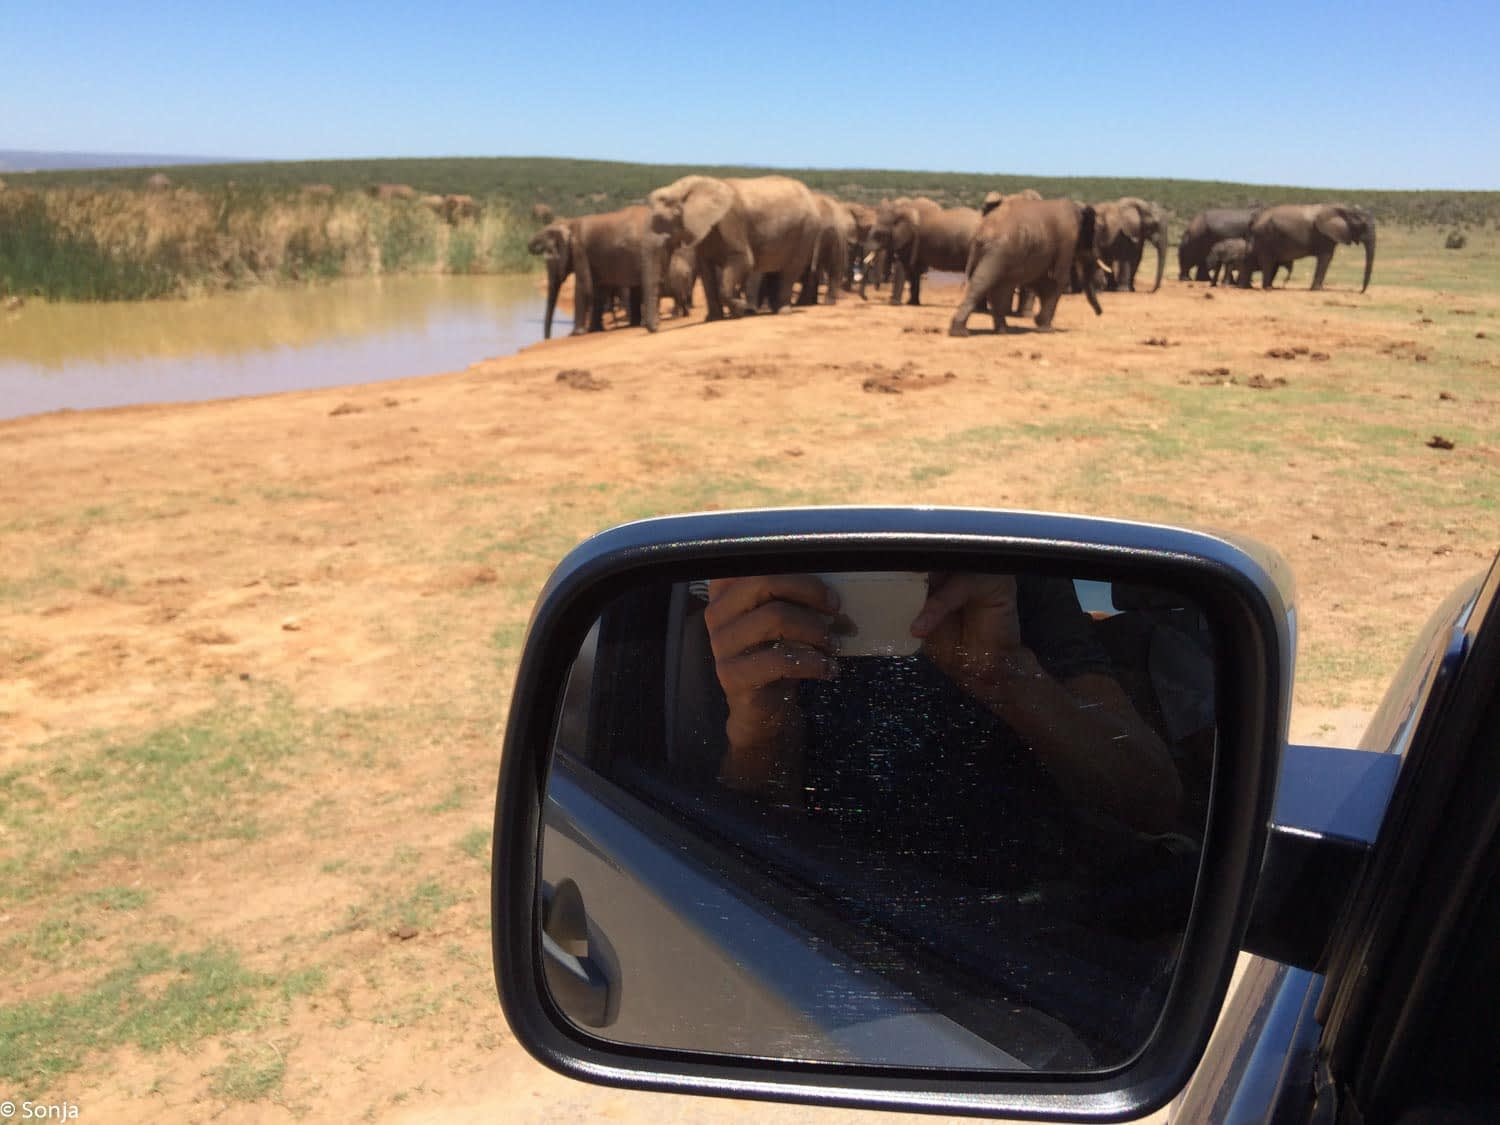 group of elephants in Addo Elephant Park